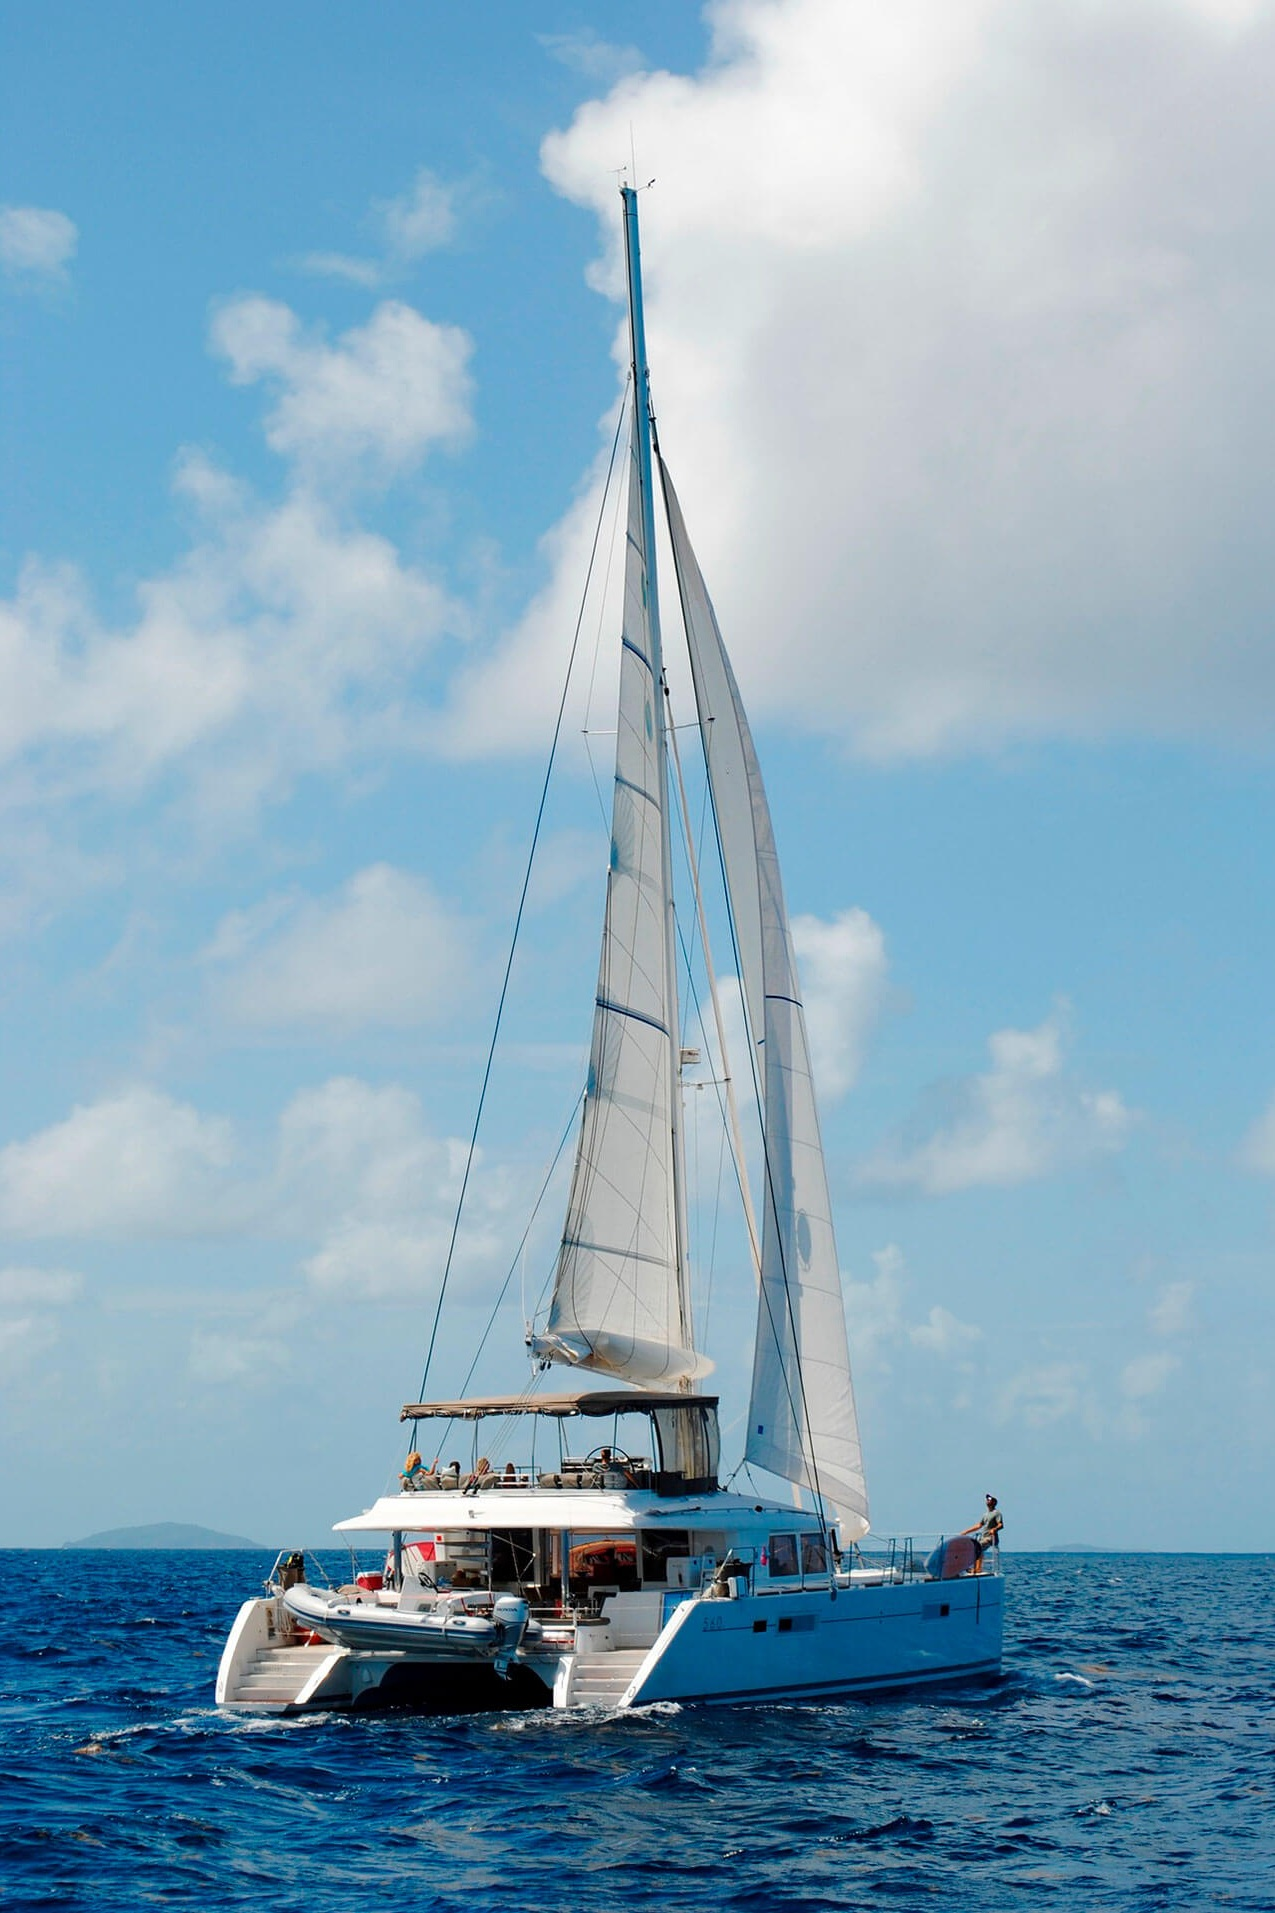 Take a ride on the largest catamaran in the Riviera Maya. This four hour shared charter is a fun way to see the Caribbean waters.